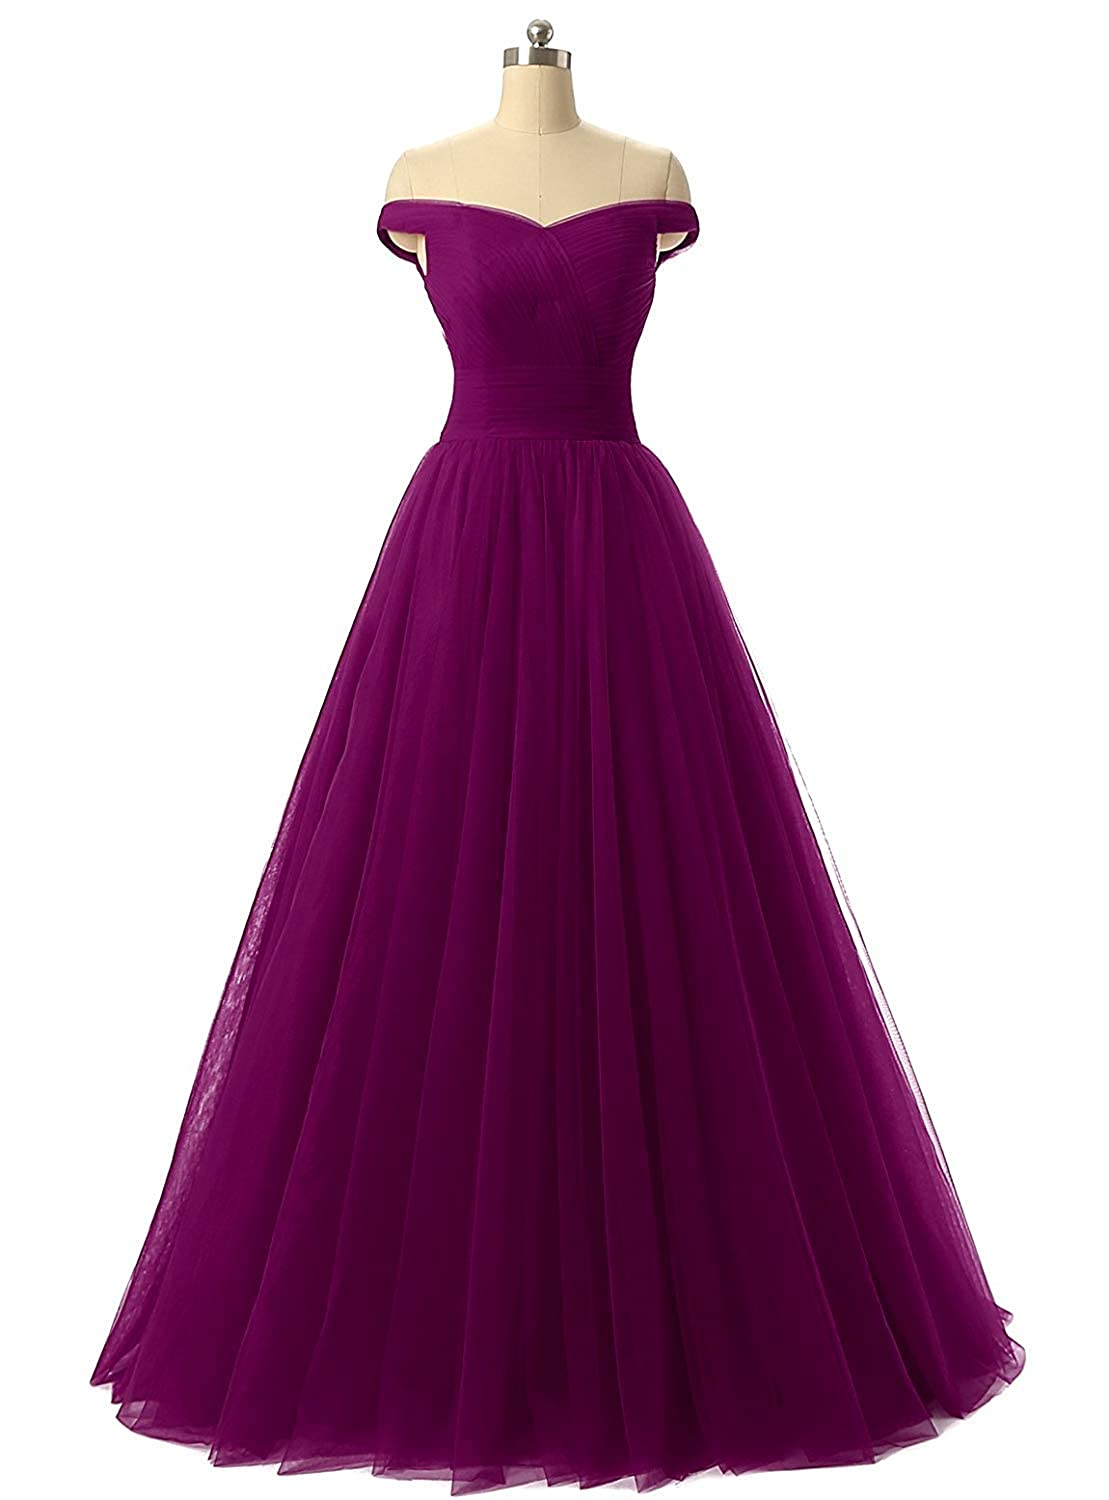 Dark Purple Diydress Aline Tulle Prom Formal Evening Homecoming Dress Ball Gown